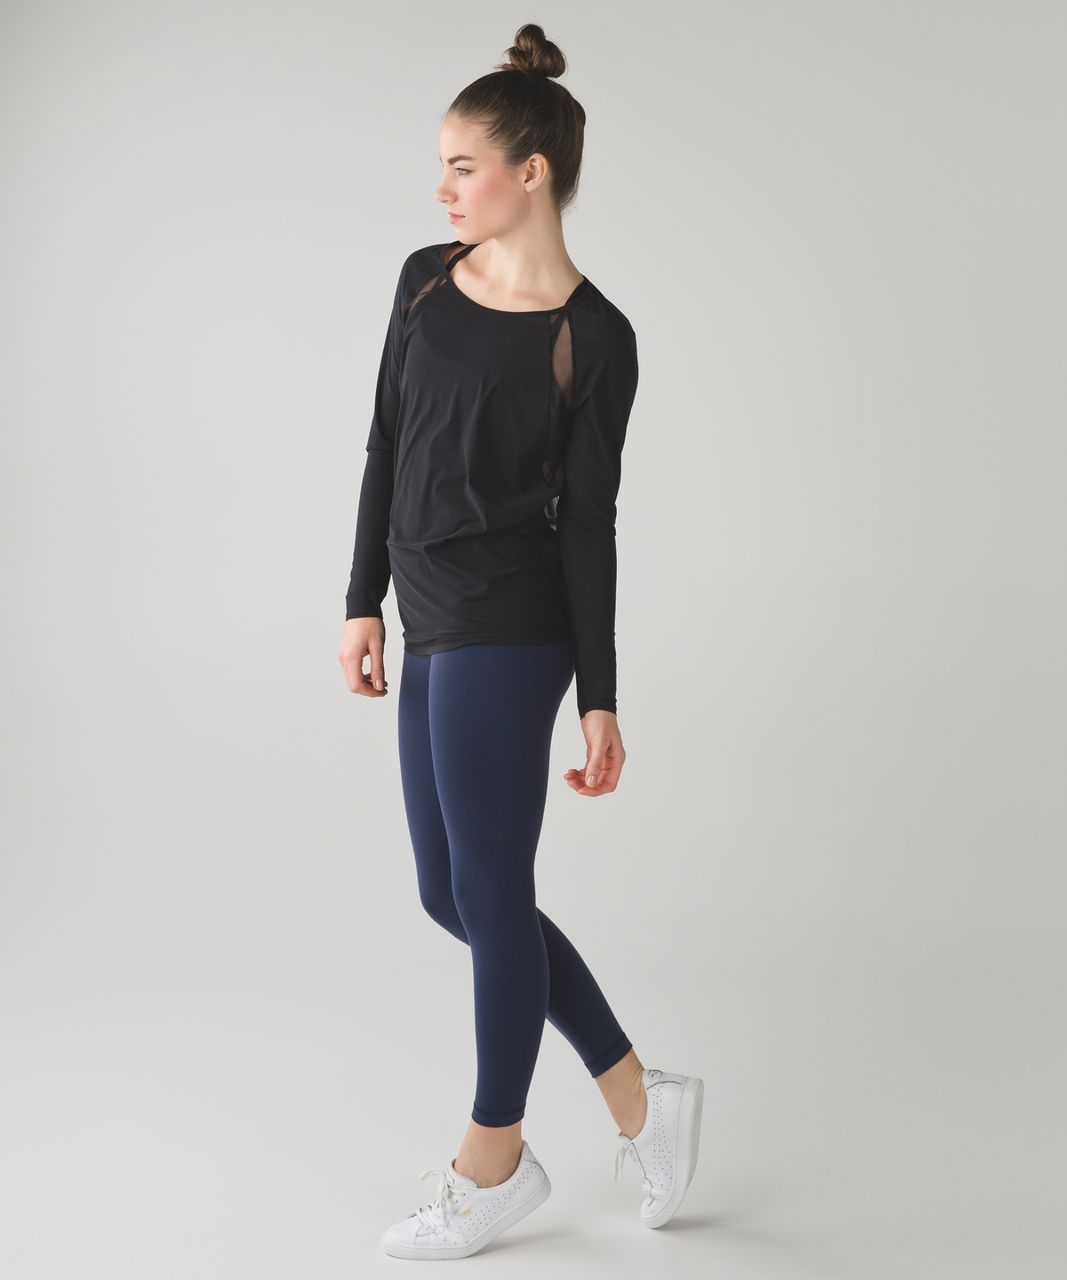 Lululemon If Youre Lucky Long Sleeve Tee II - Black